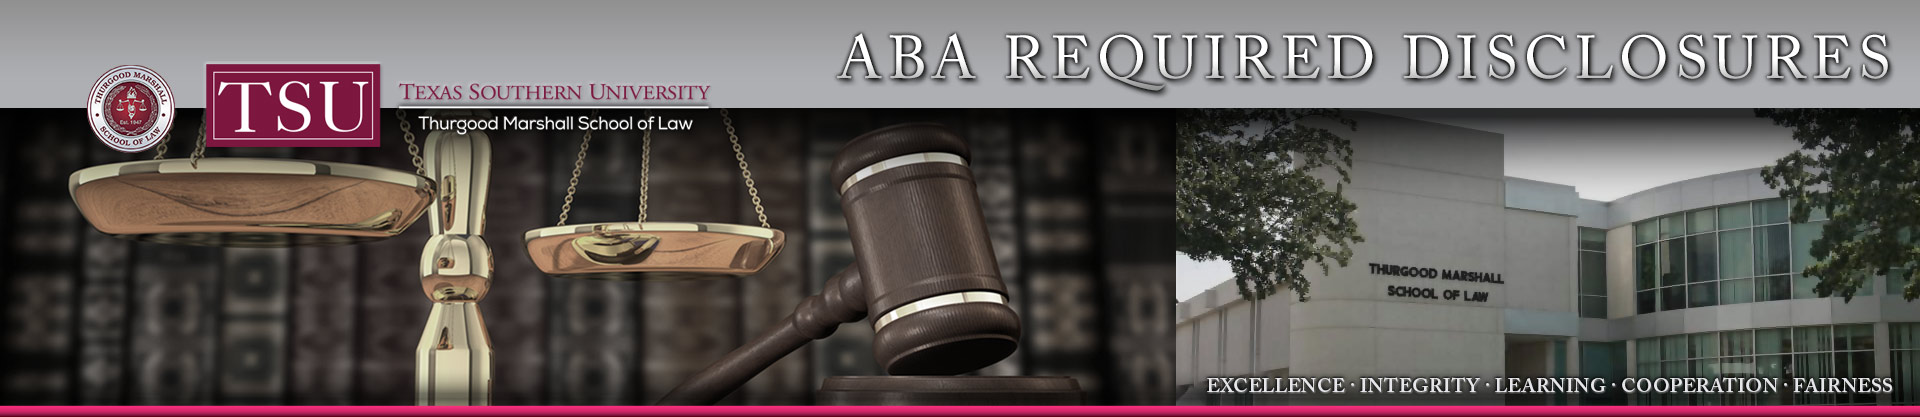 ABA Required Disclosures